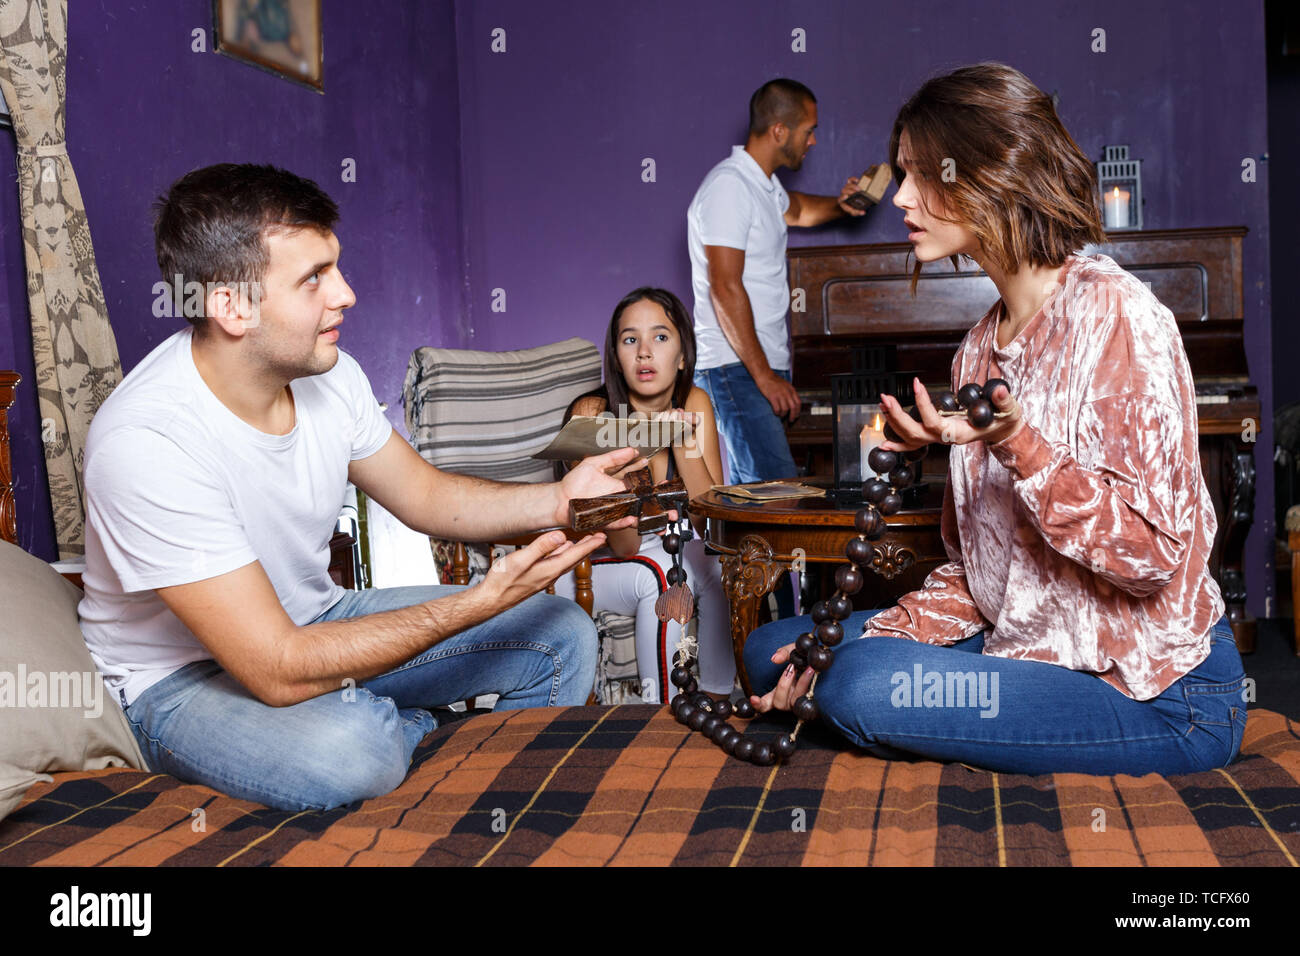 Young friends looking at wooden rosary while solving conundrum as detectives in quest room with old furnitures - Stock Image